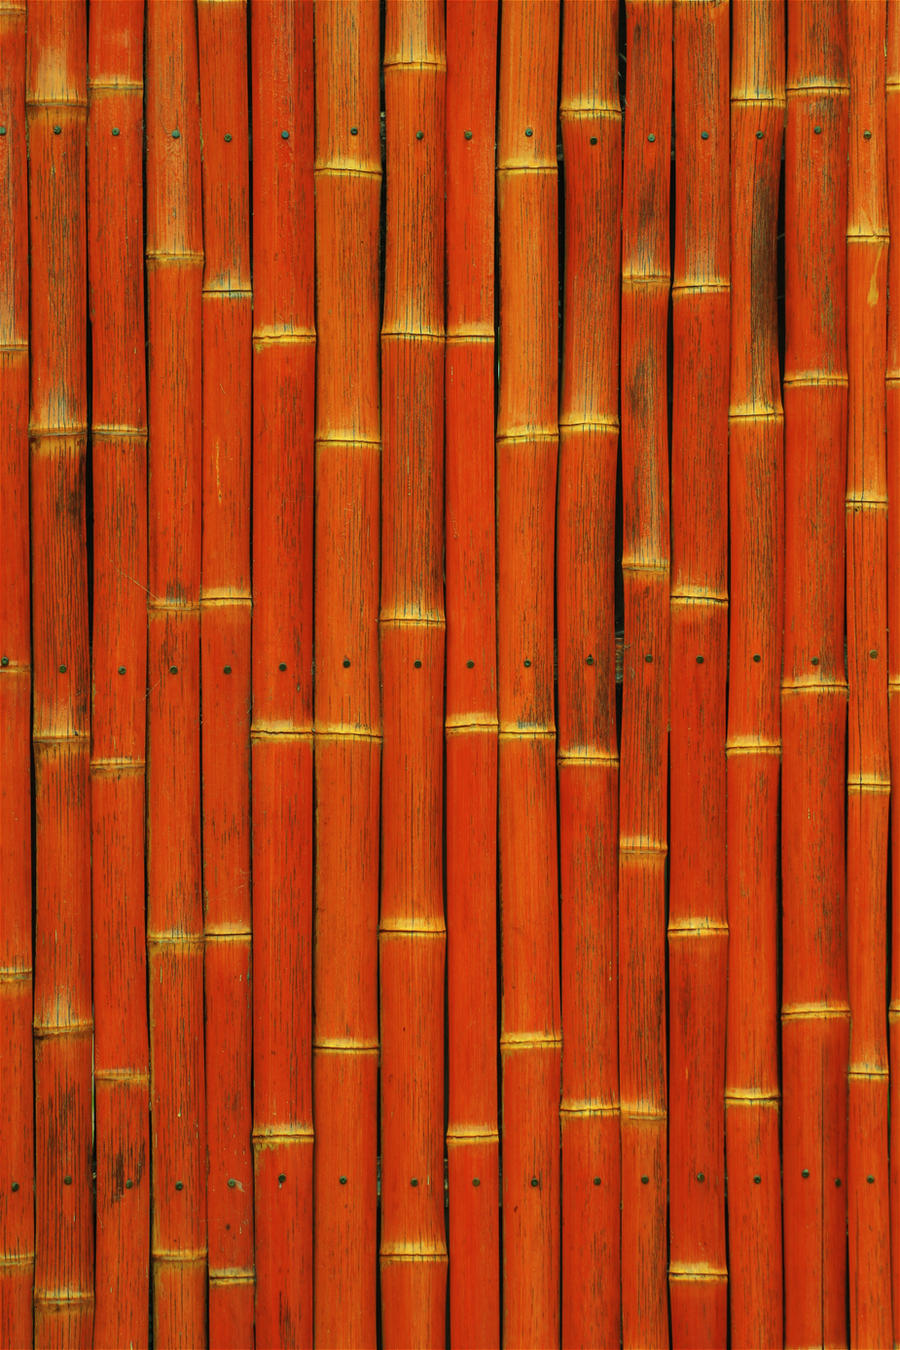 Big Bamboo by StockStockStuff